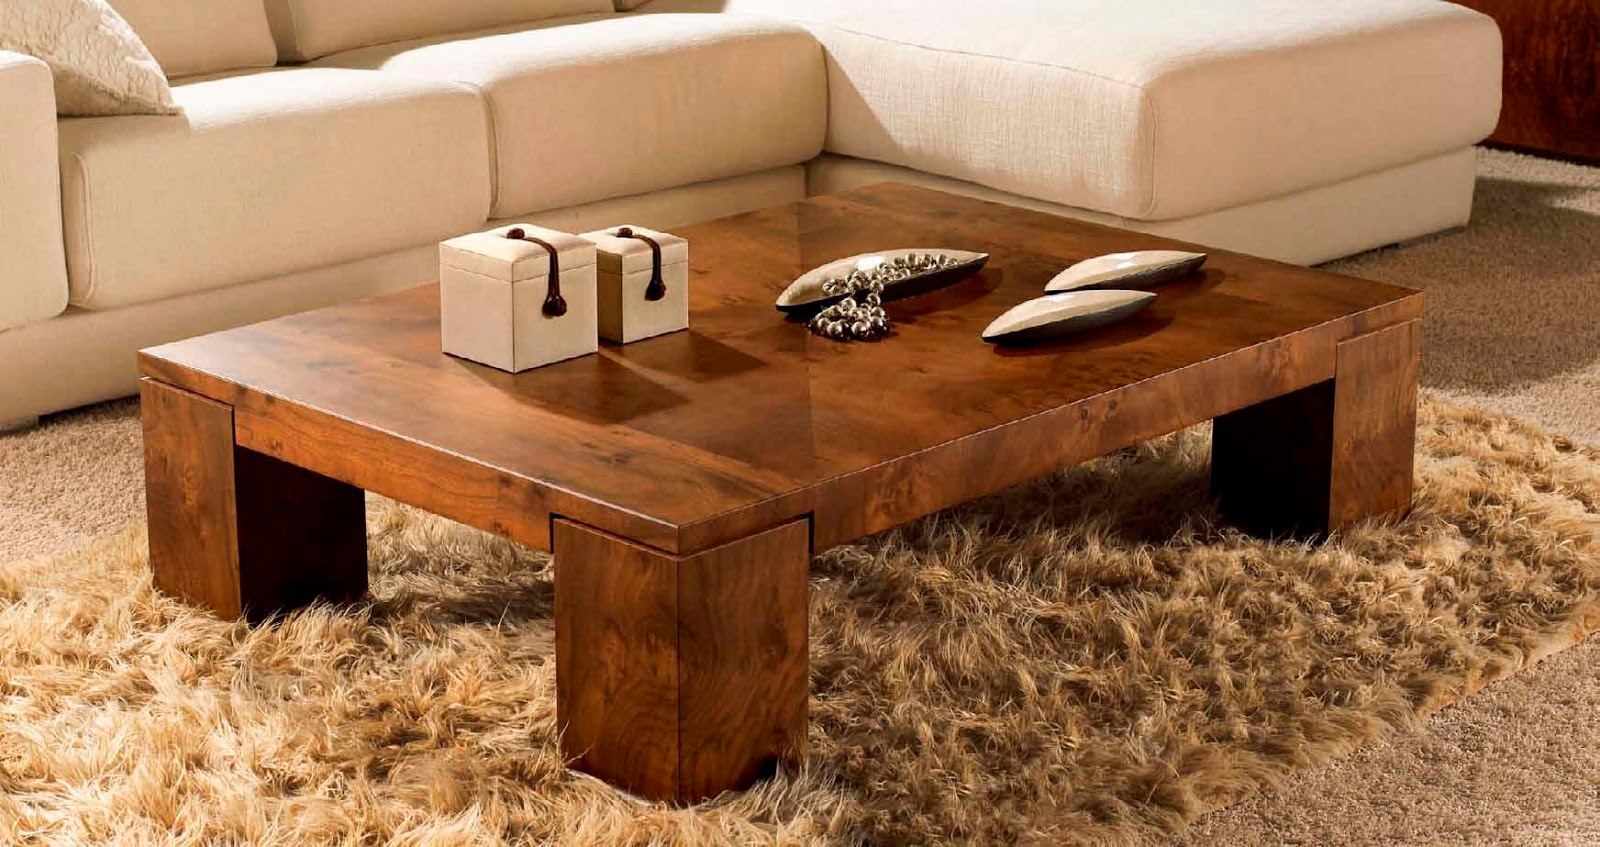 small-modern-wooden-coffee-tables-with-solid-oak-wood-coffee-tables-in-lacquered-finishing-for-living-room